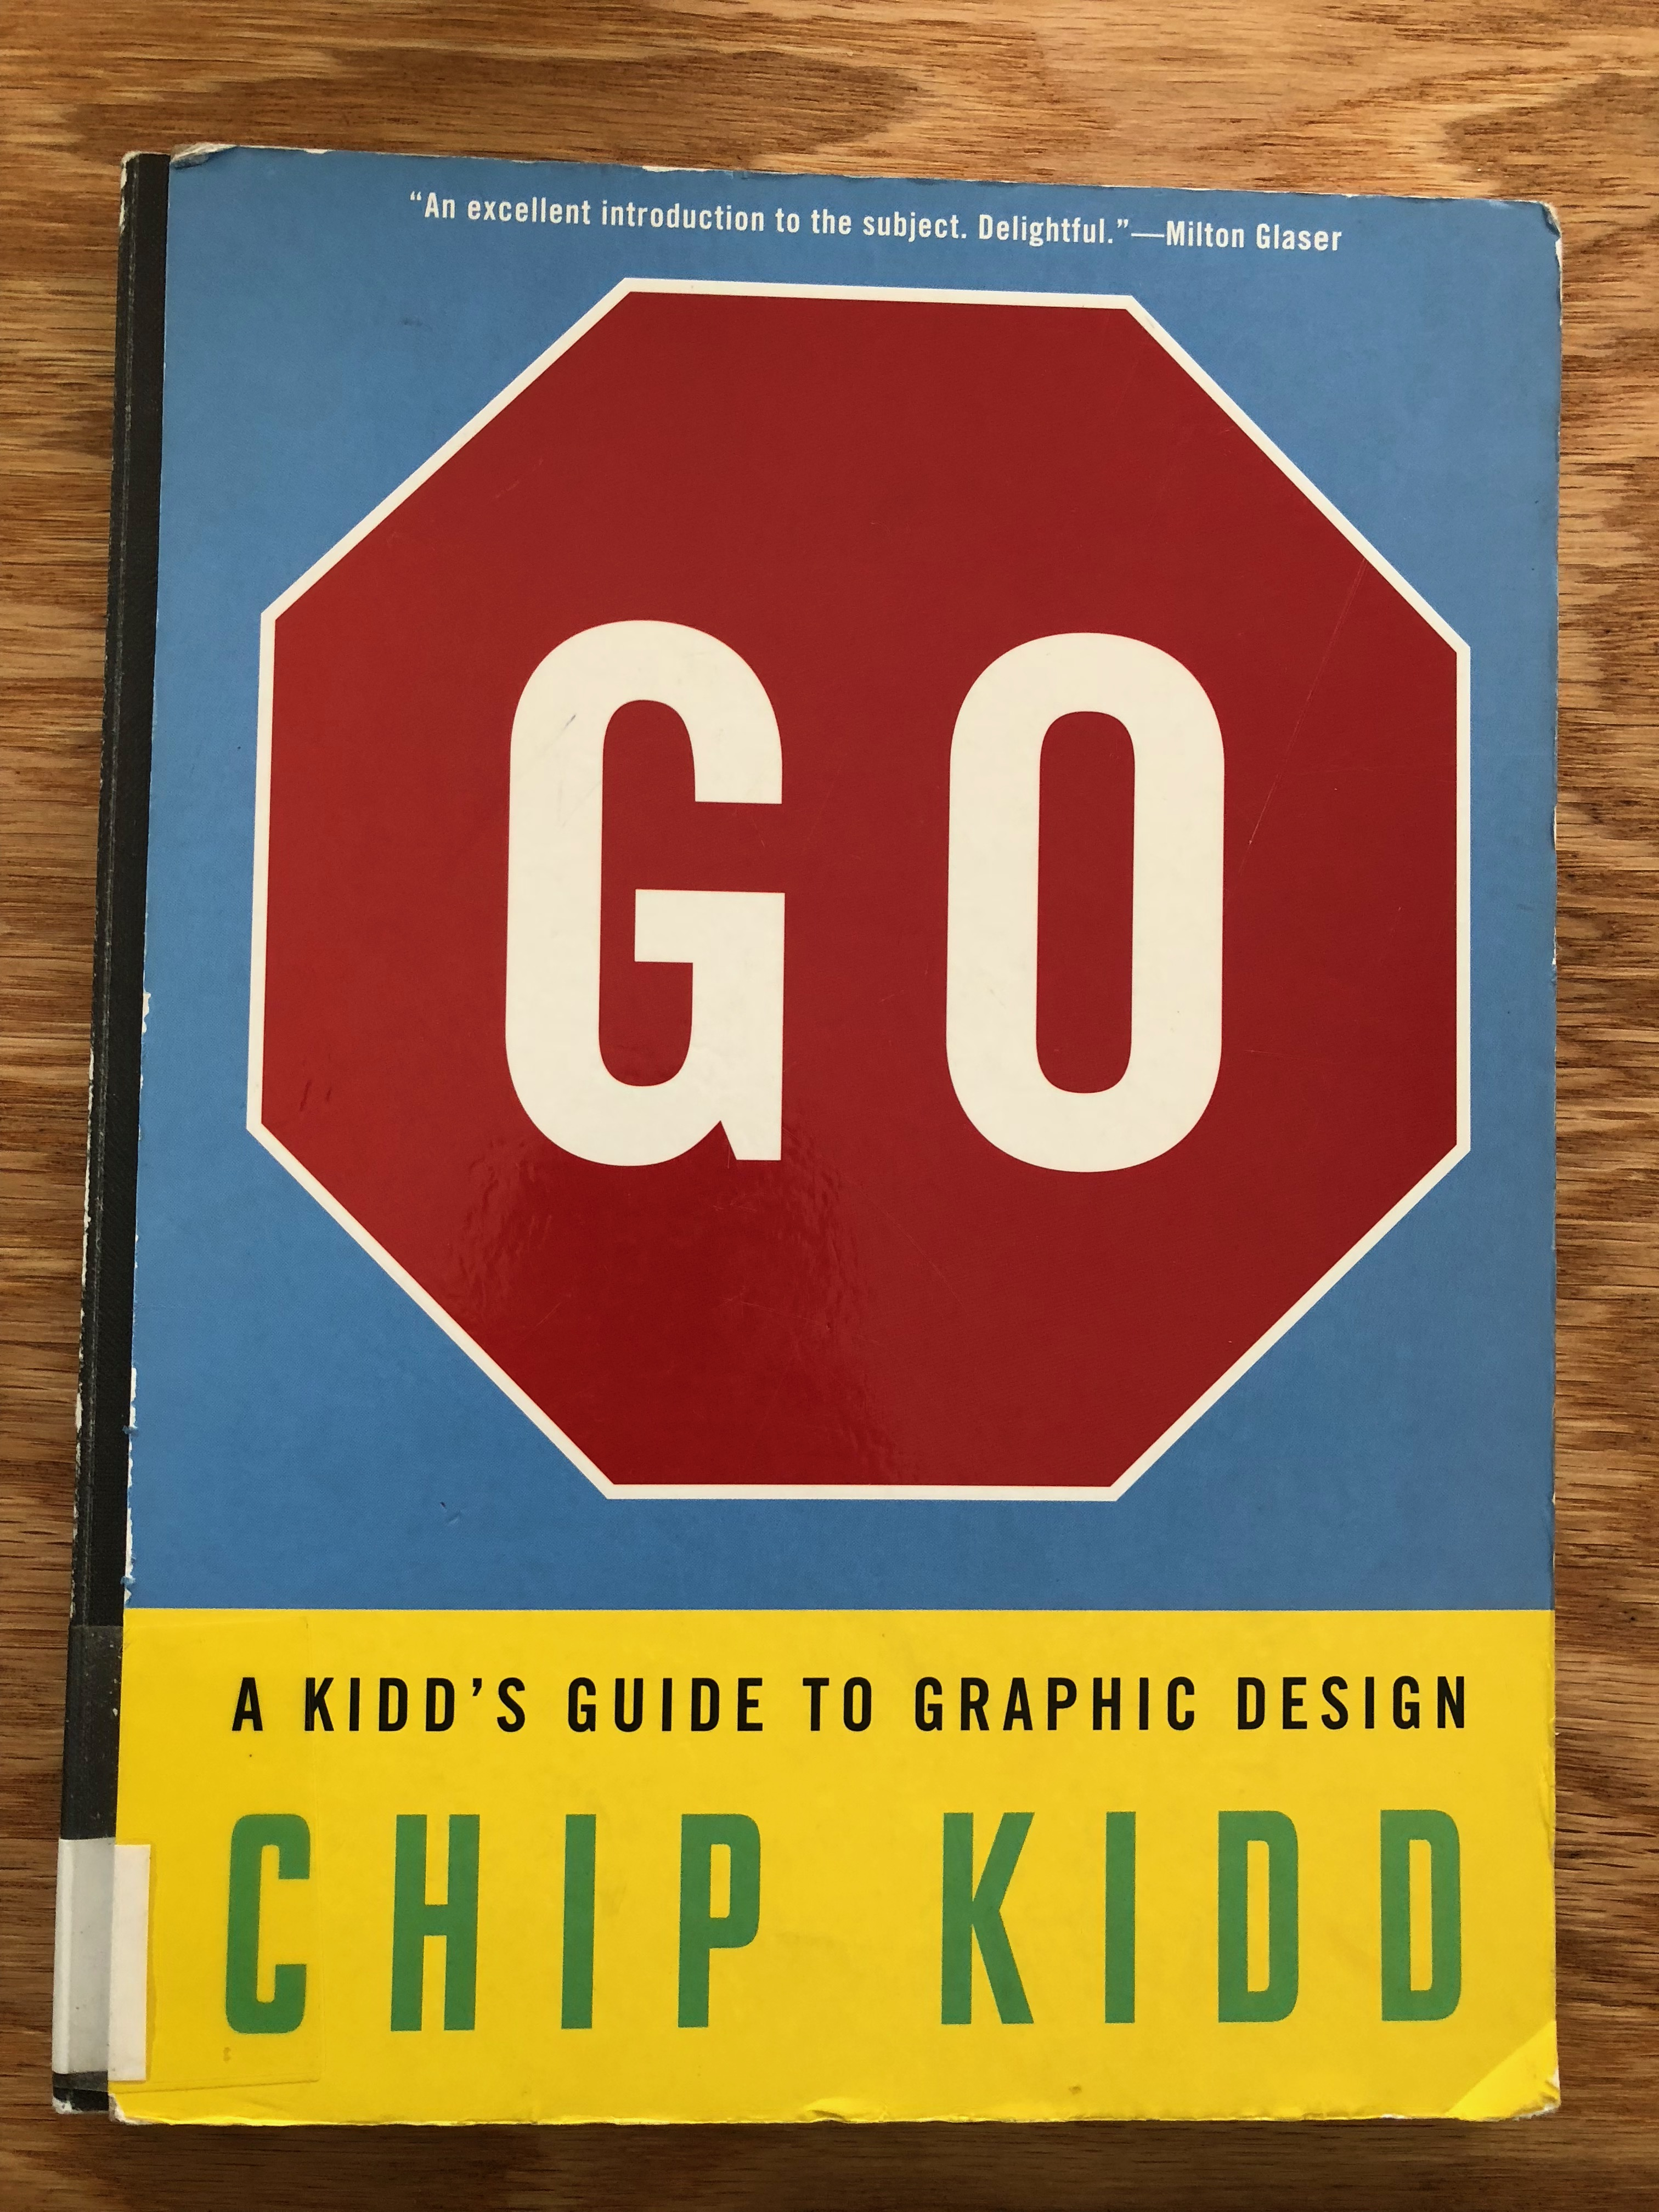 A Kidd's Guide to Graphic Design - Cover